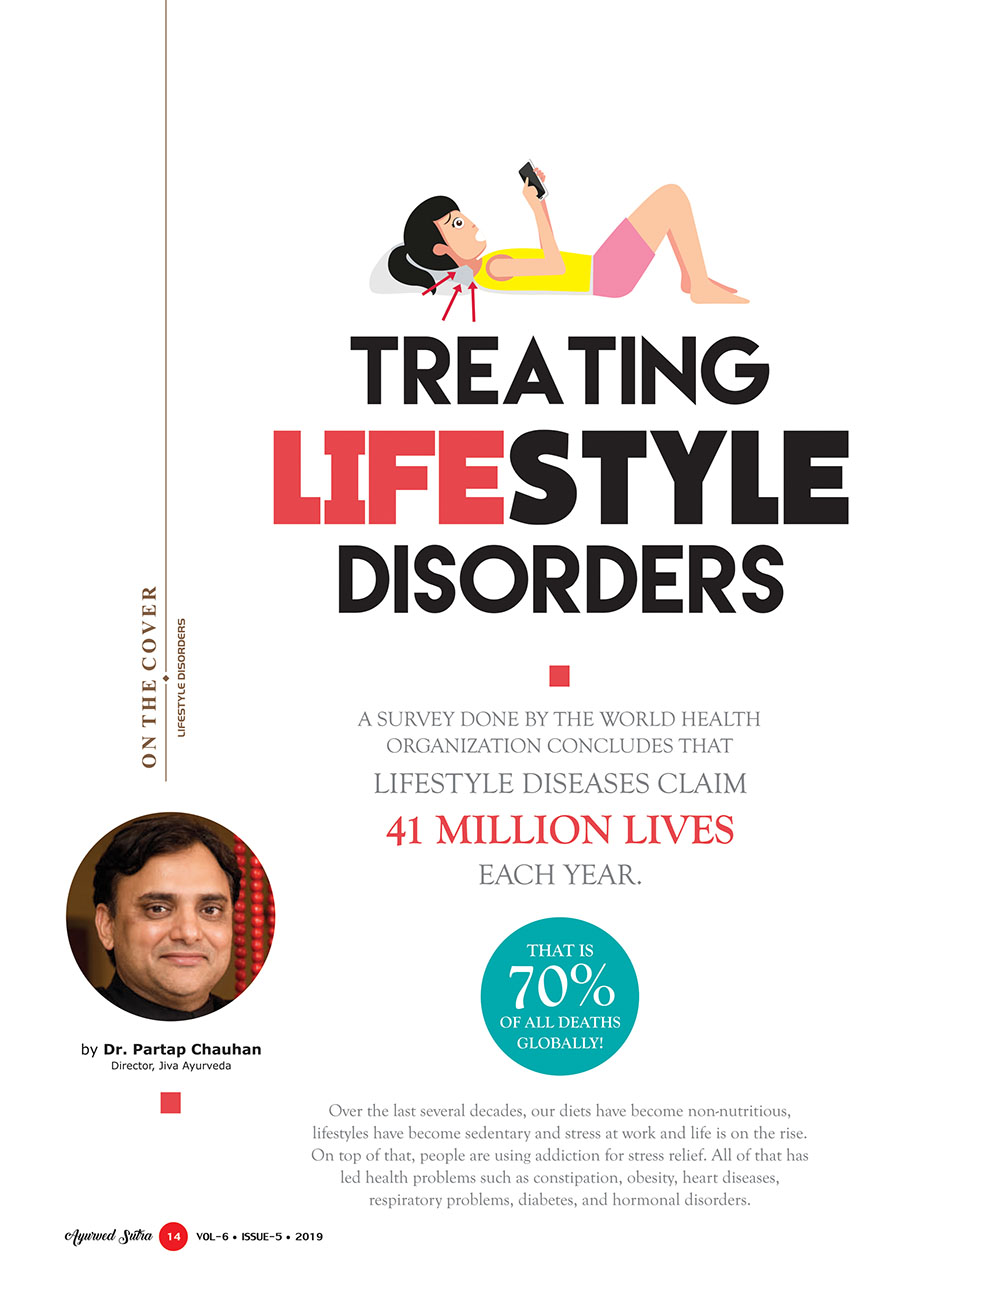 Ayurvedsutra Vol 06 issue 05 16 - Treating Lifestyle Disorders